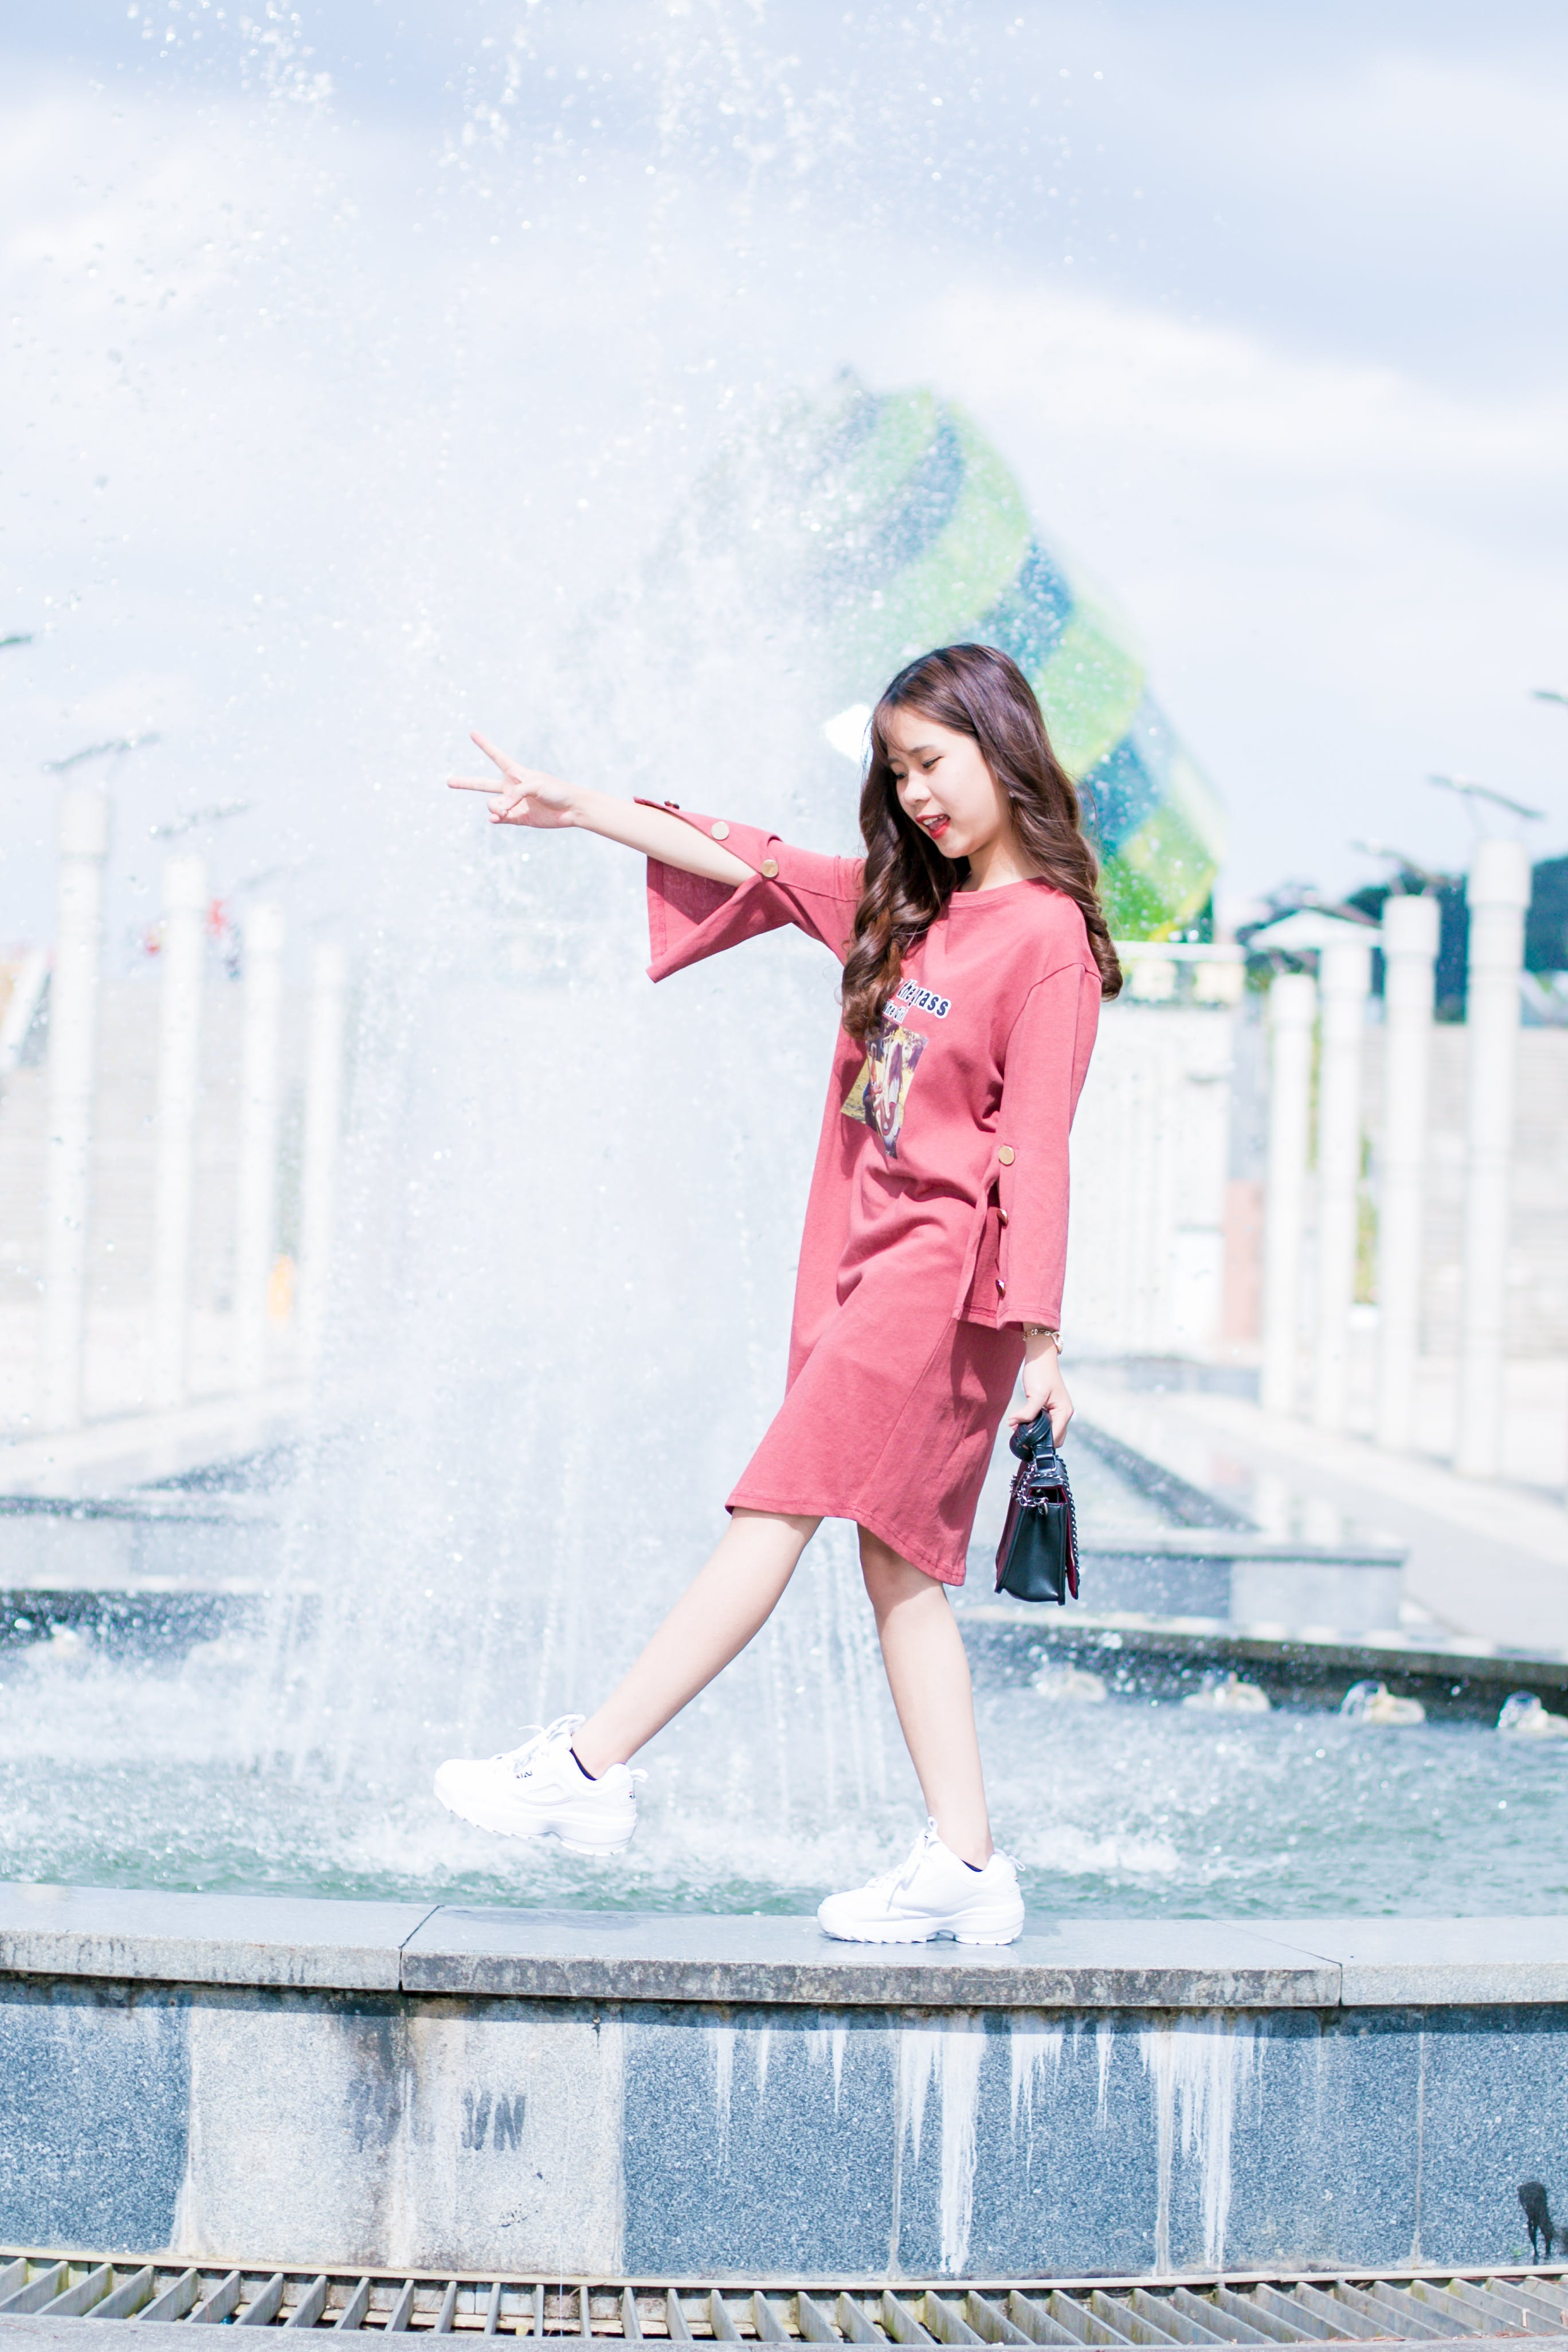 Woman Wearing Pink Long-sleeved Dress Walking on Fountain during Daytinme